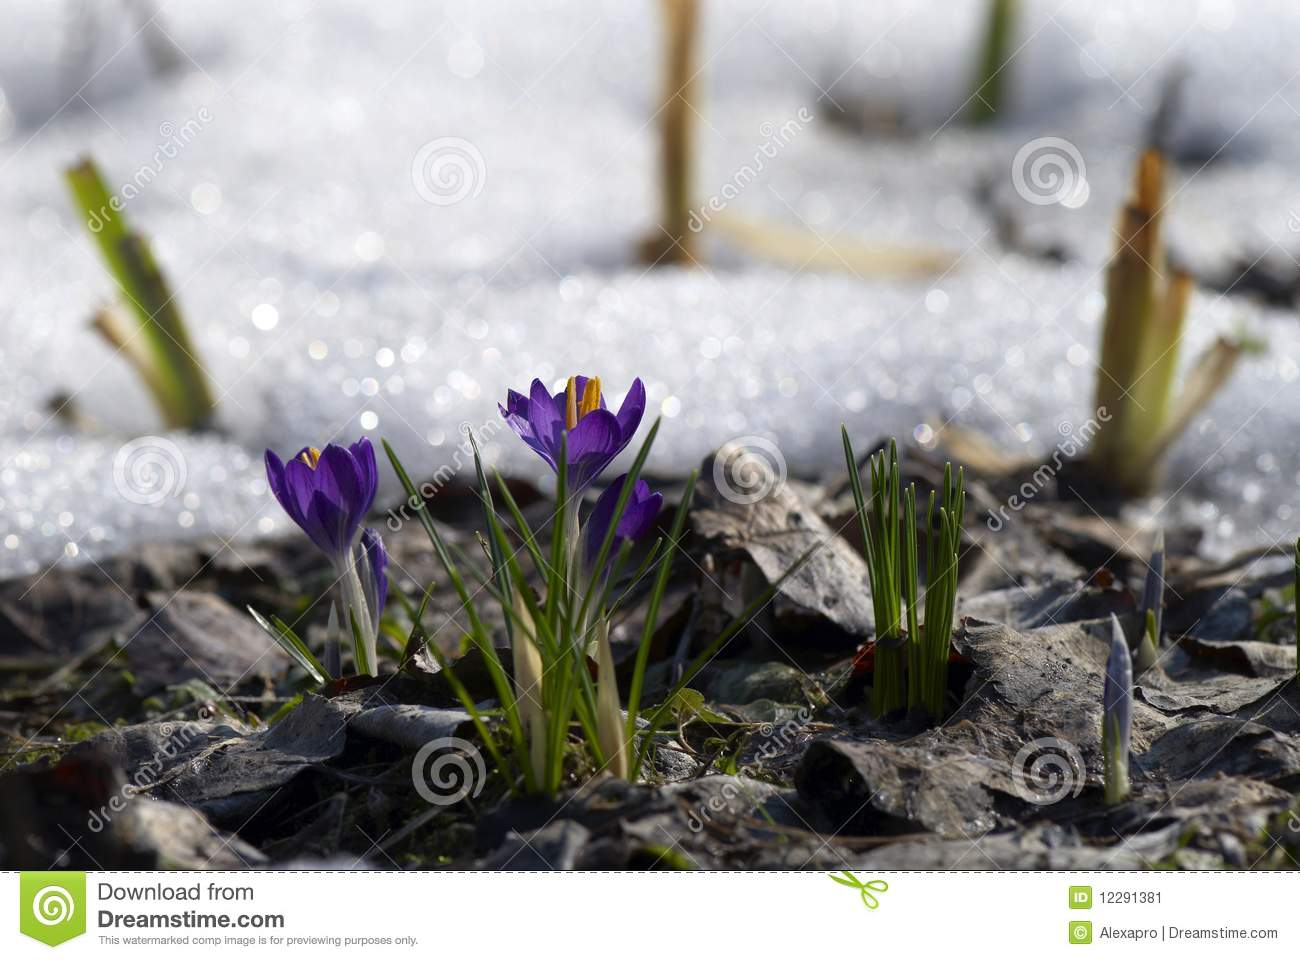 Crocuses In Early Spring Stock Image - Image: 12291381